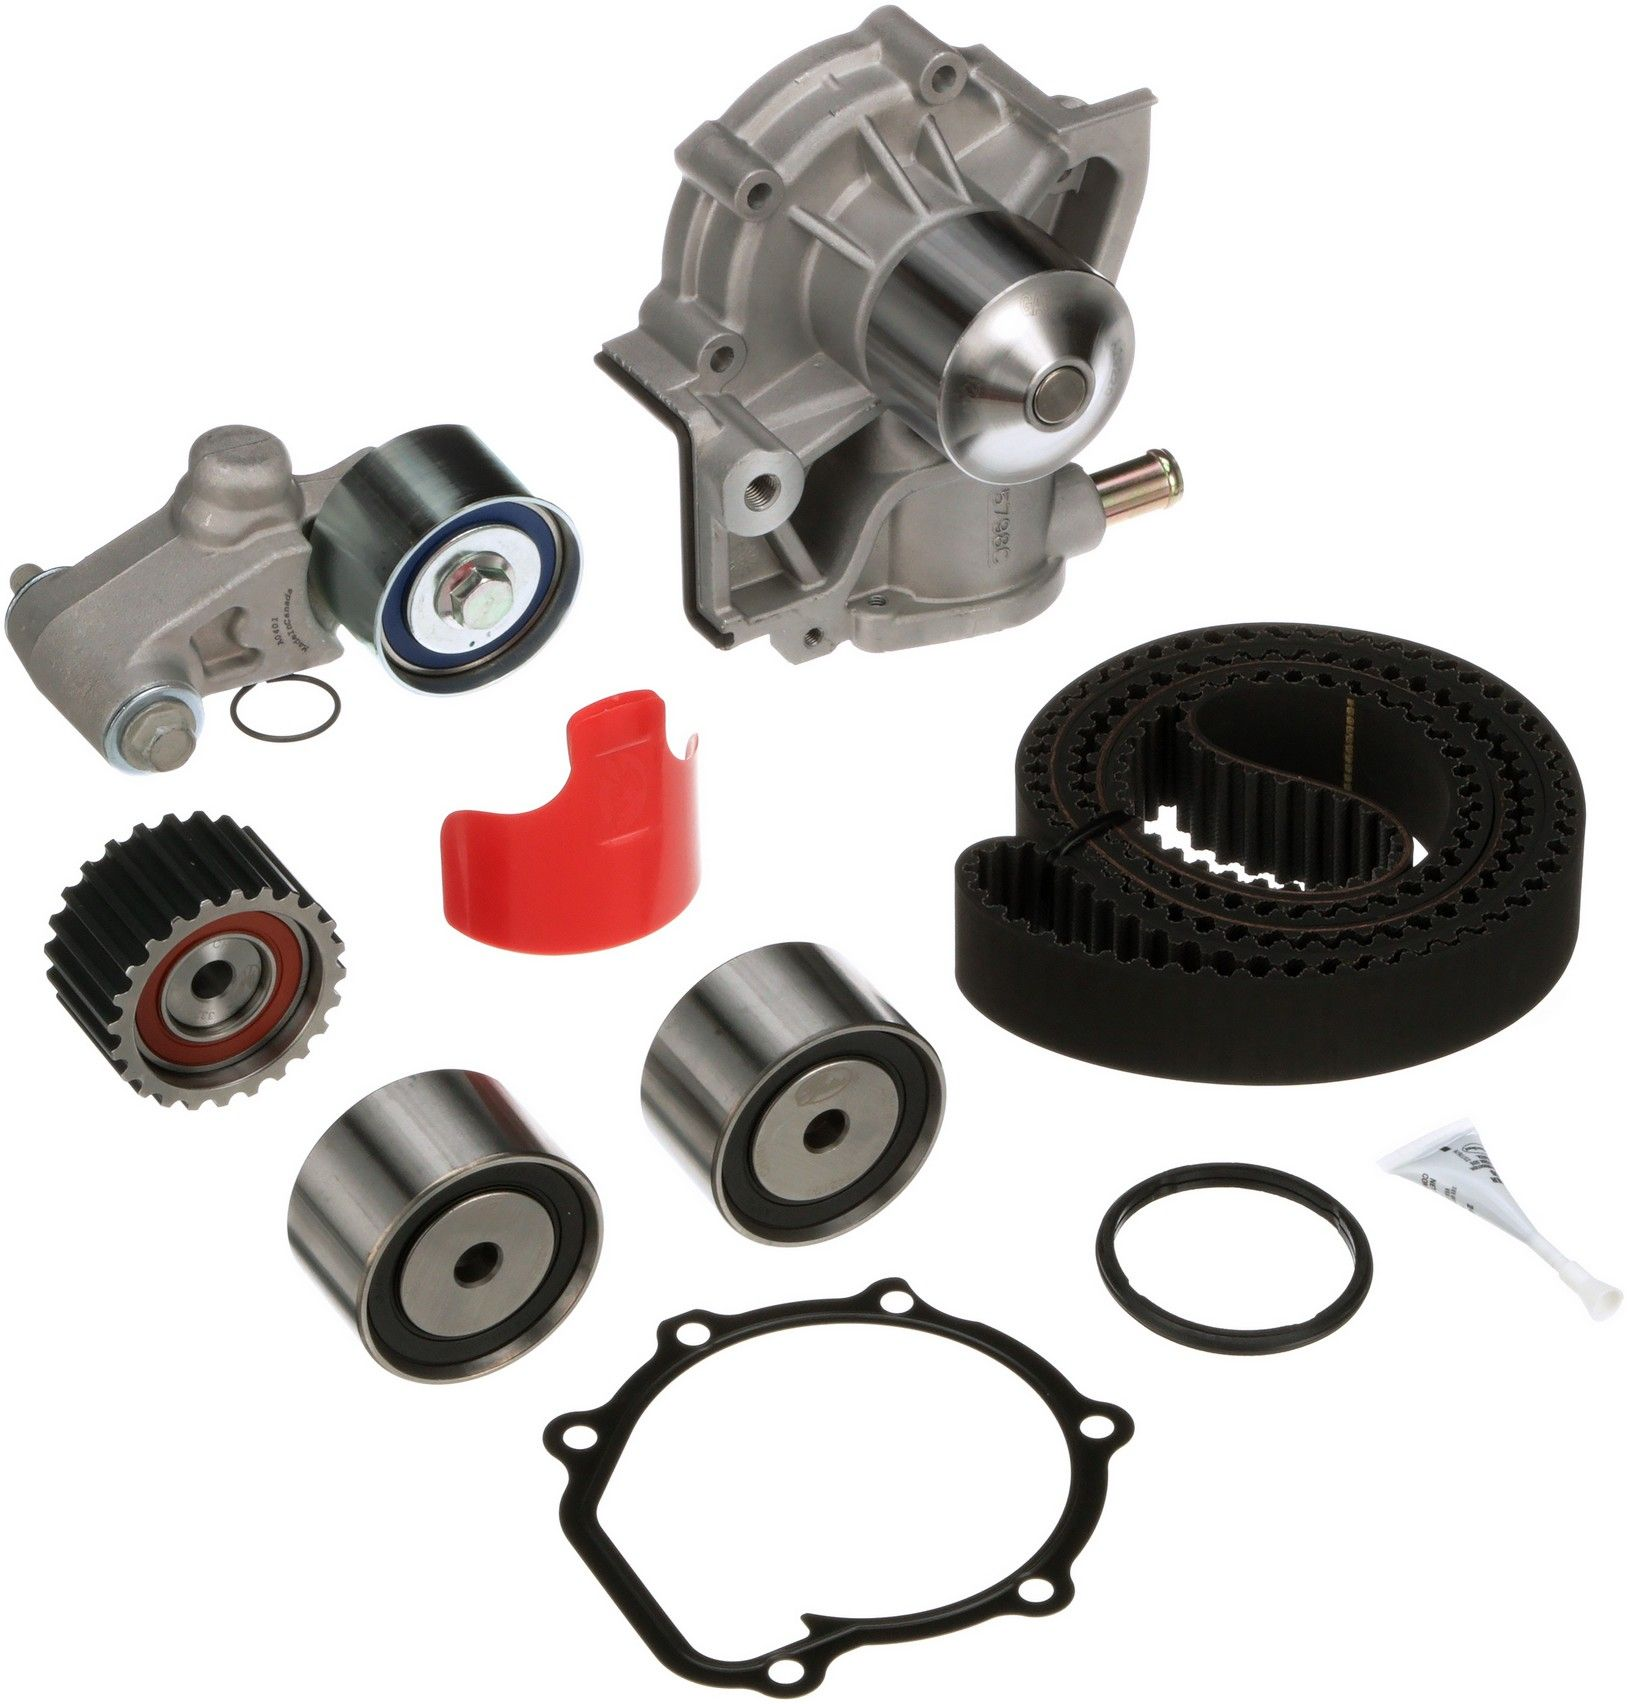 Subaru Legacy Engine Timing Belt Kit With Water Pump Replacement B4 Diagram 1999 4 Cyl 25l Gates Tckwp277a W Integrated Assembly Interference Application